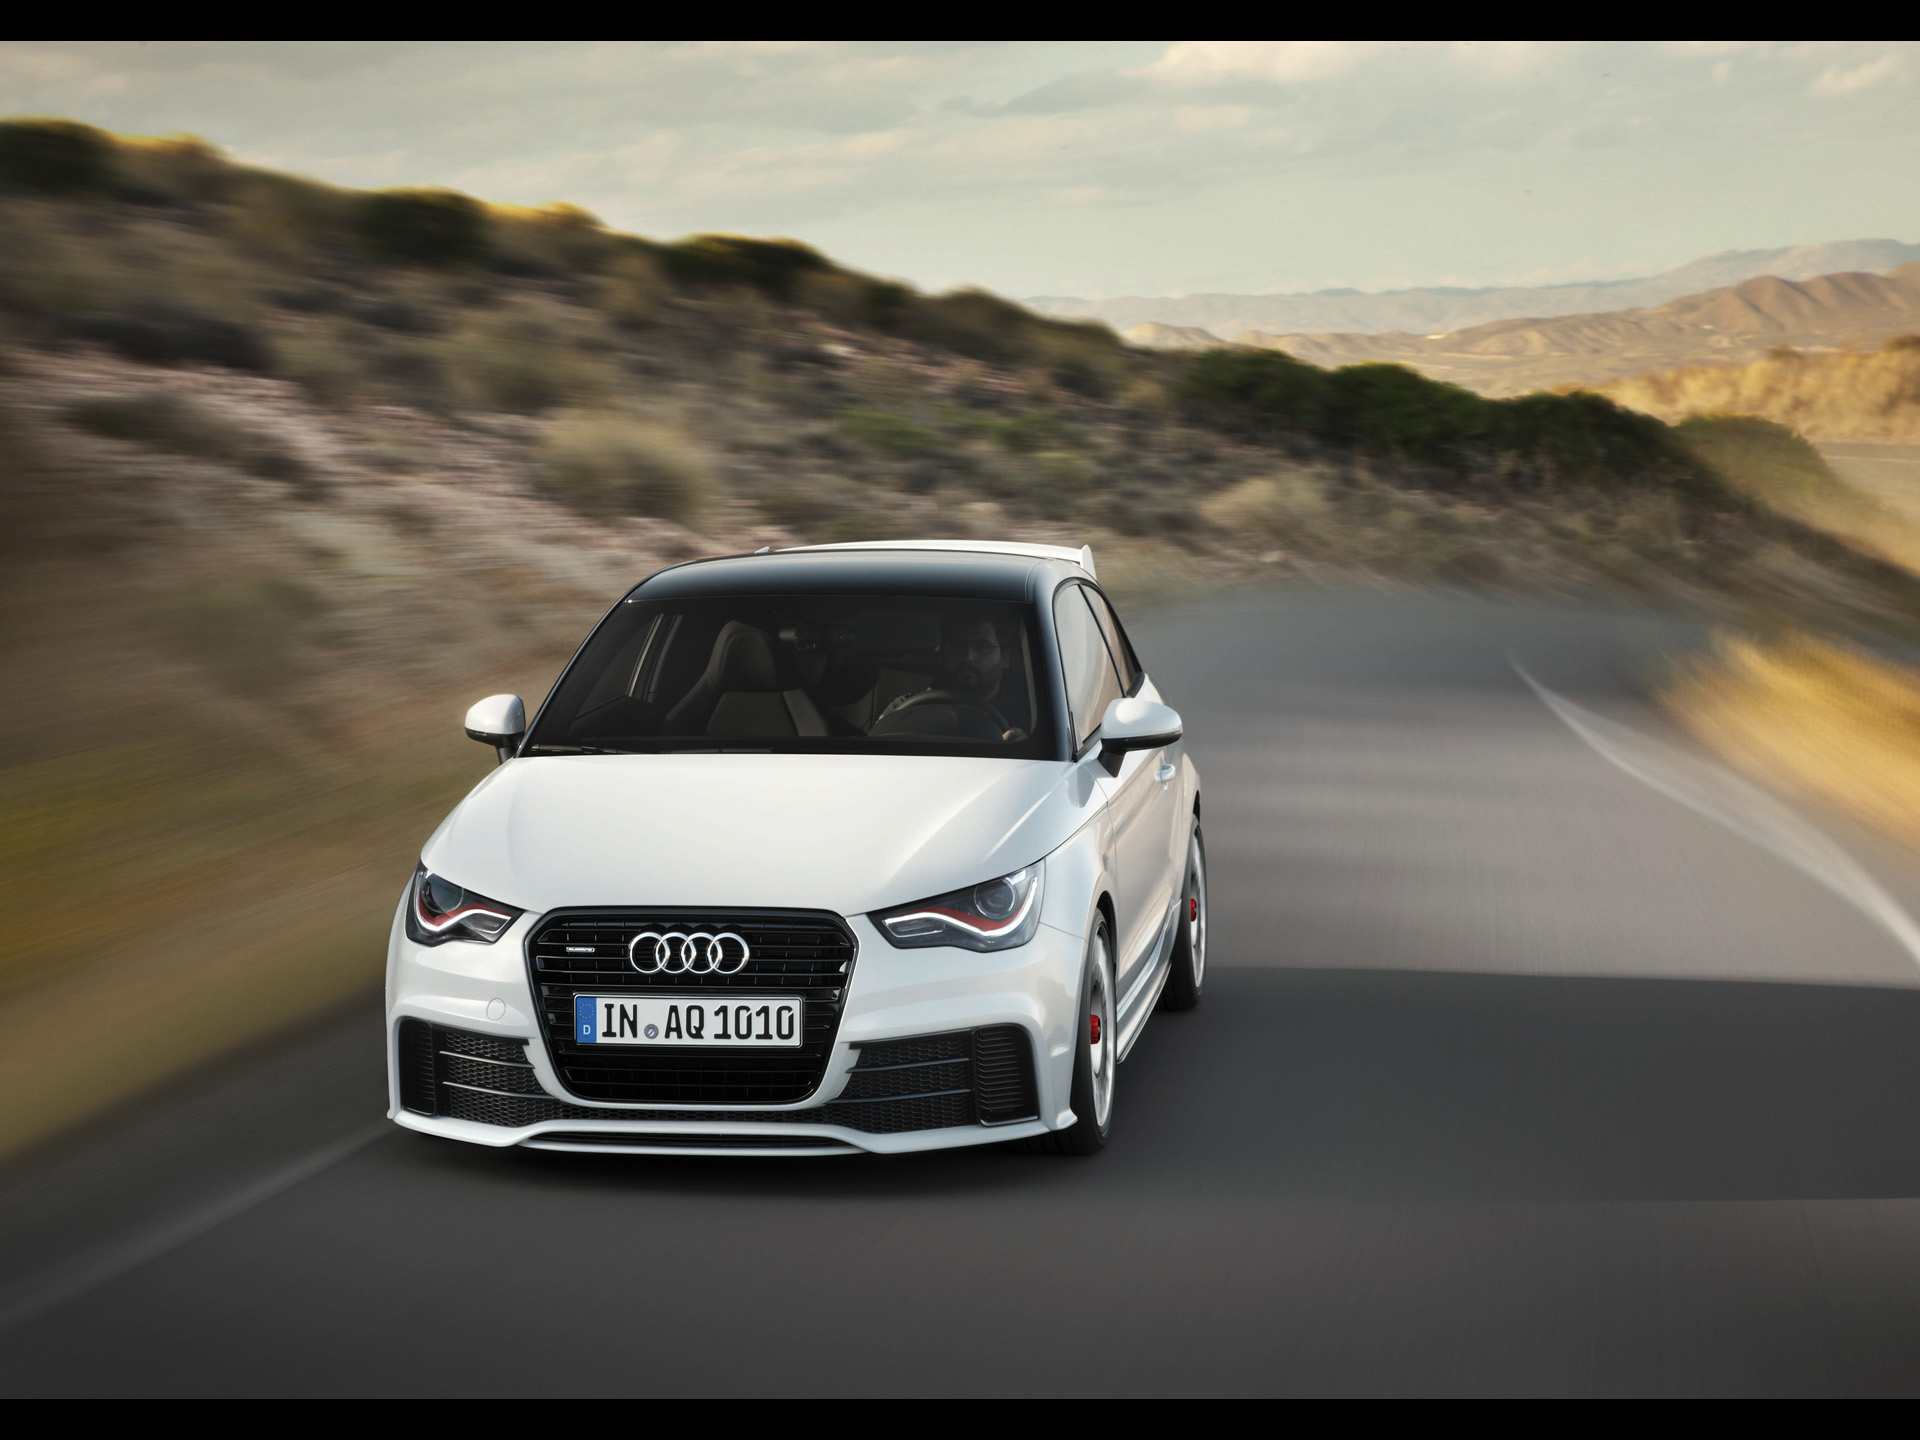 1920x1440 - Audi A1 Wallpapers 21